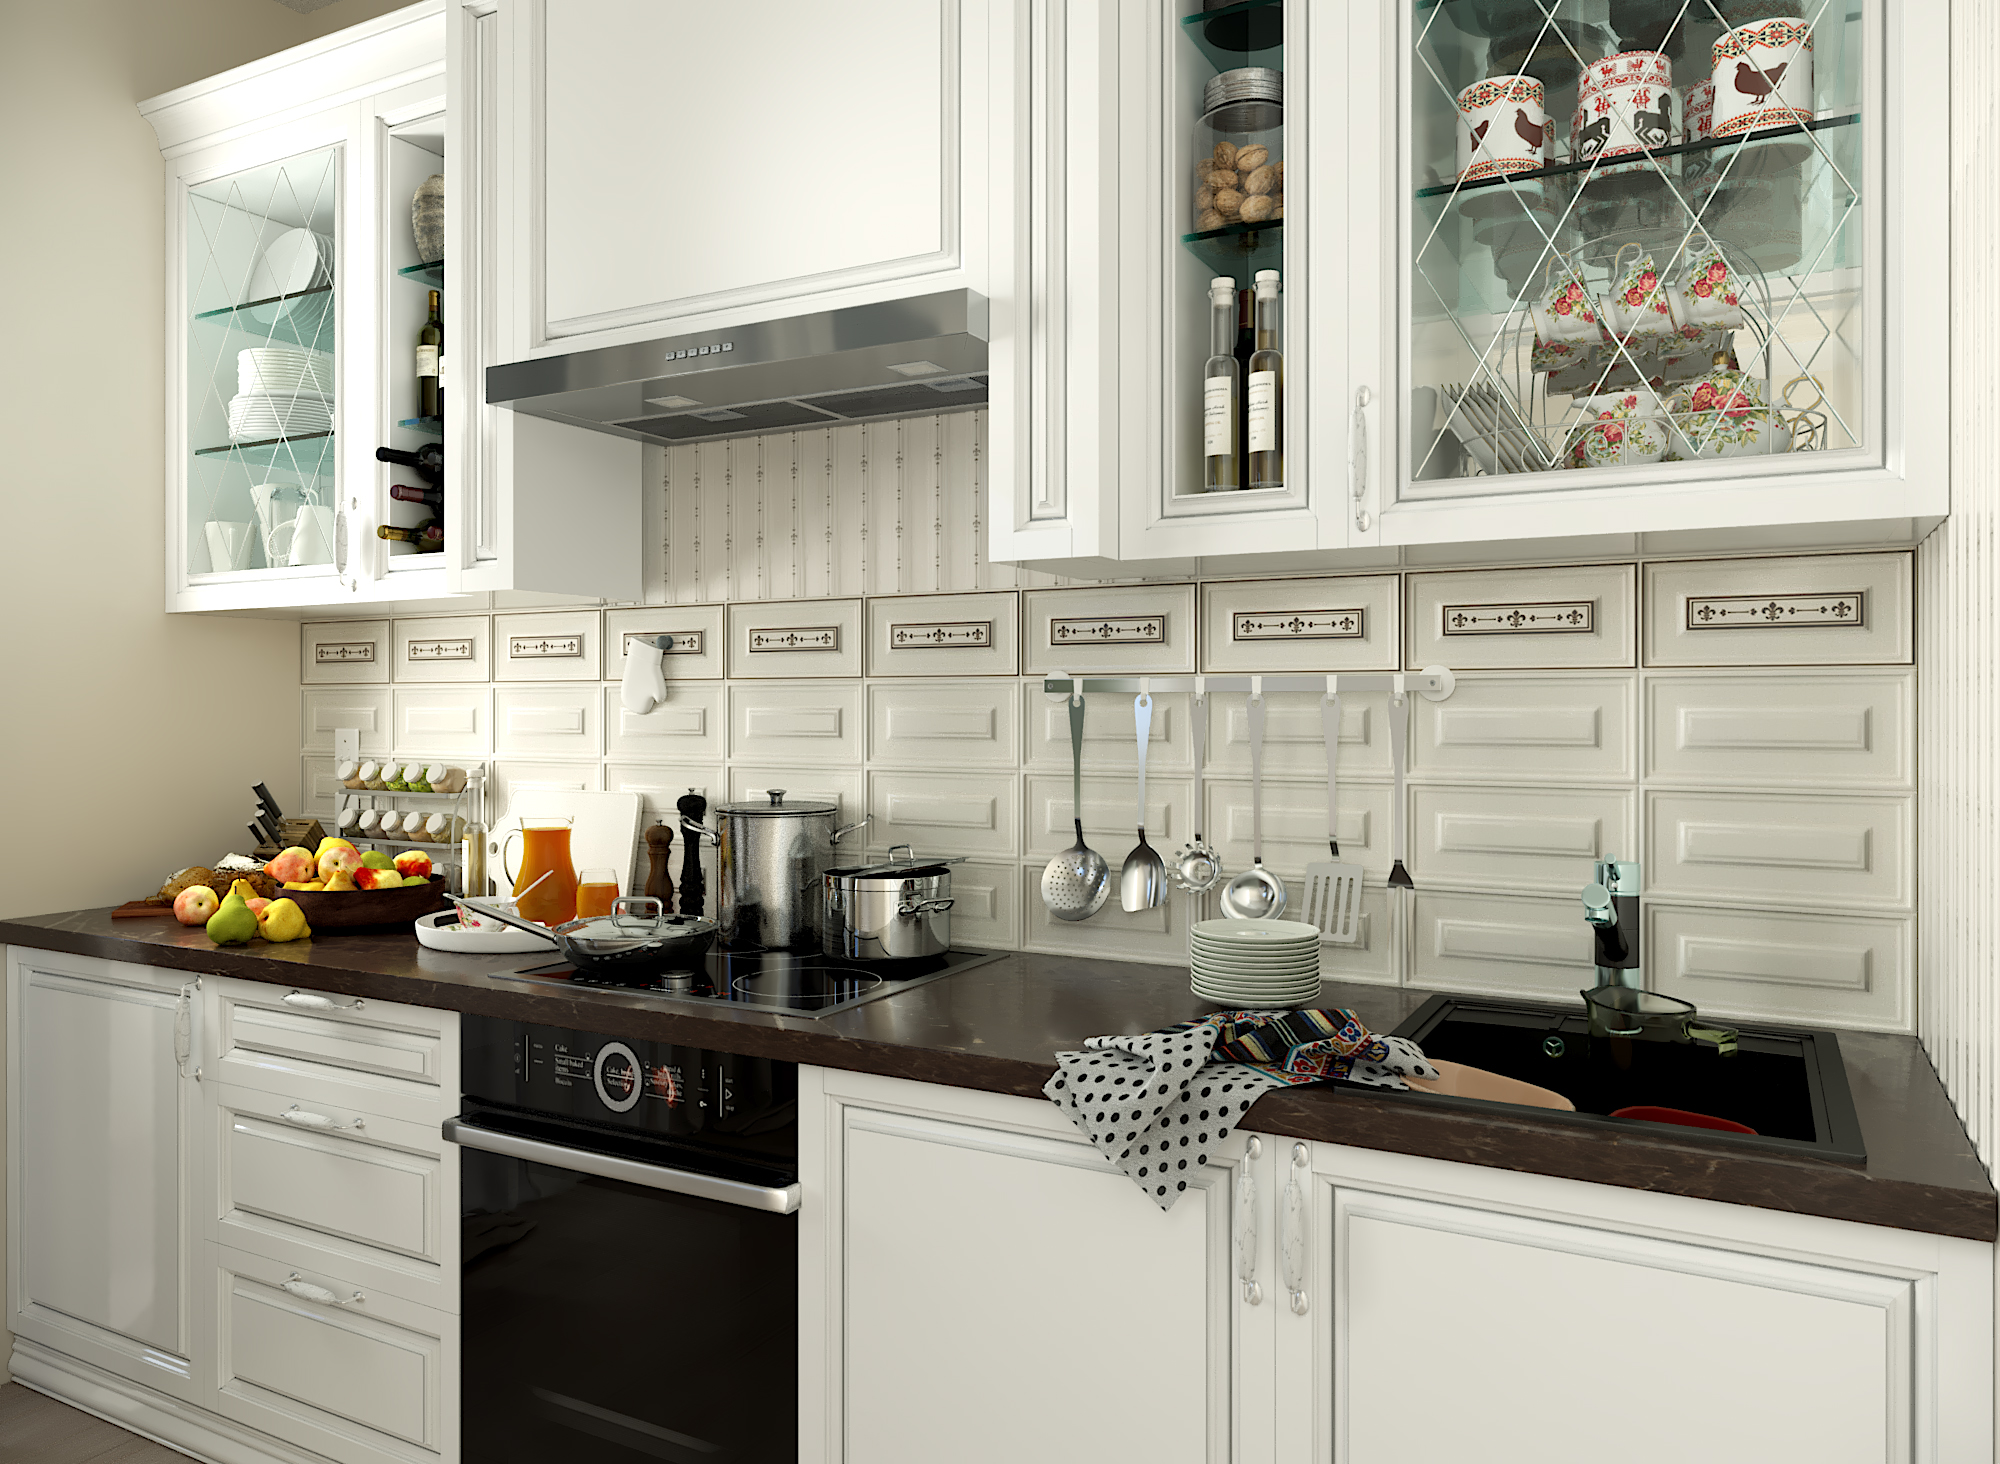 3D visualization of the kitchen in 3d max corona render image